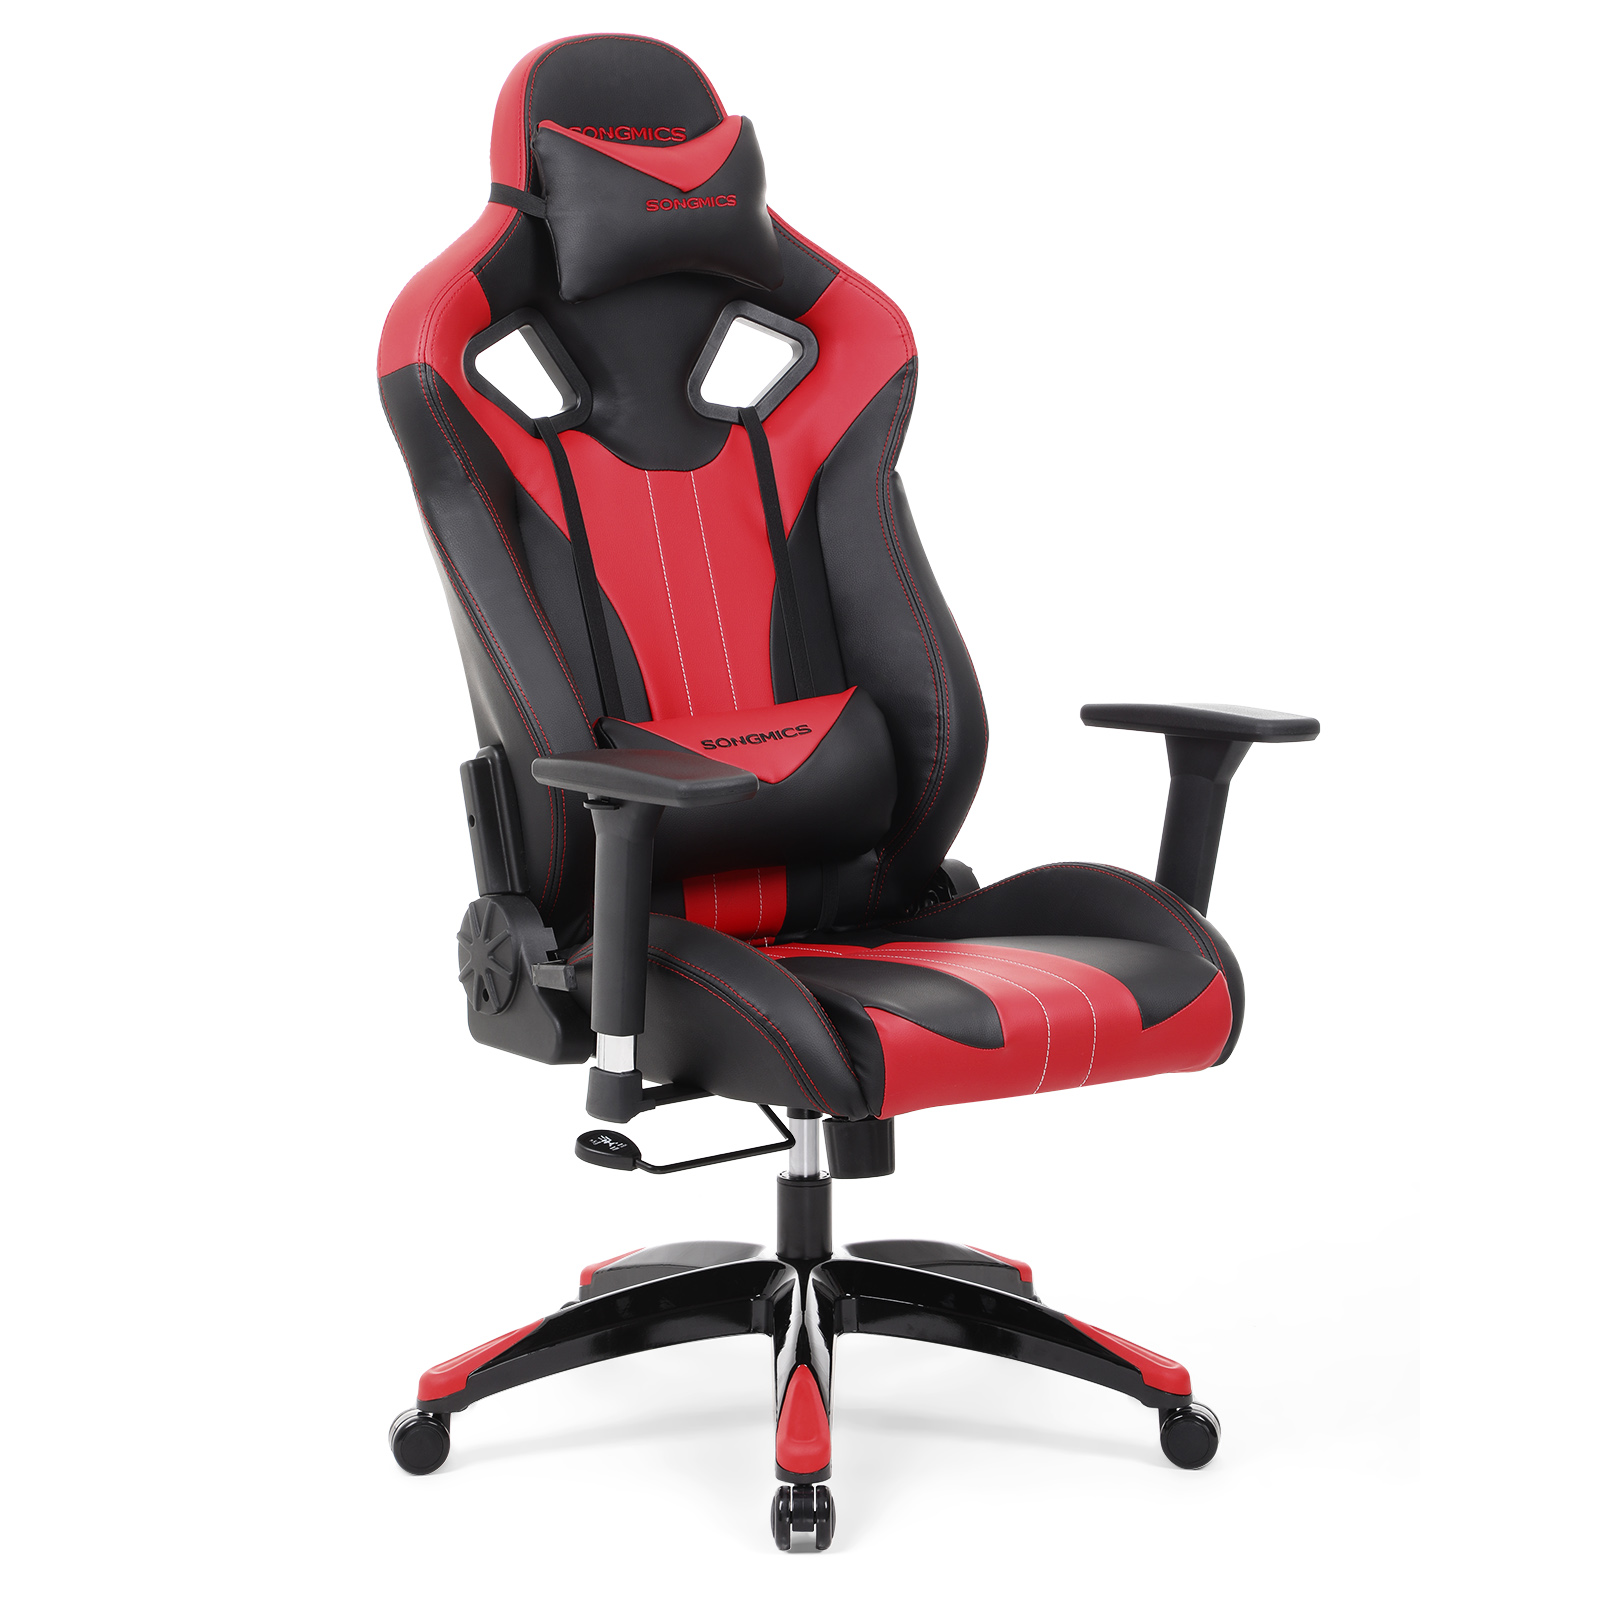 Fauteuil de bureau gaming chaise gamer chaise pour for Chaise gaming pas cher